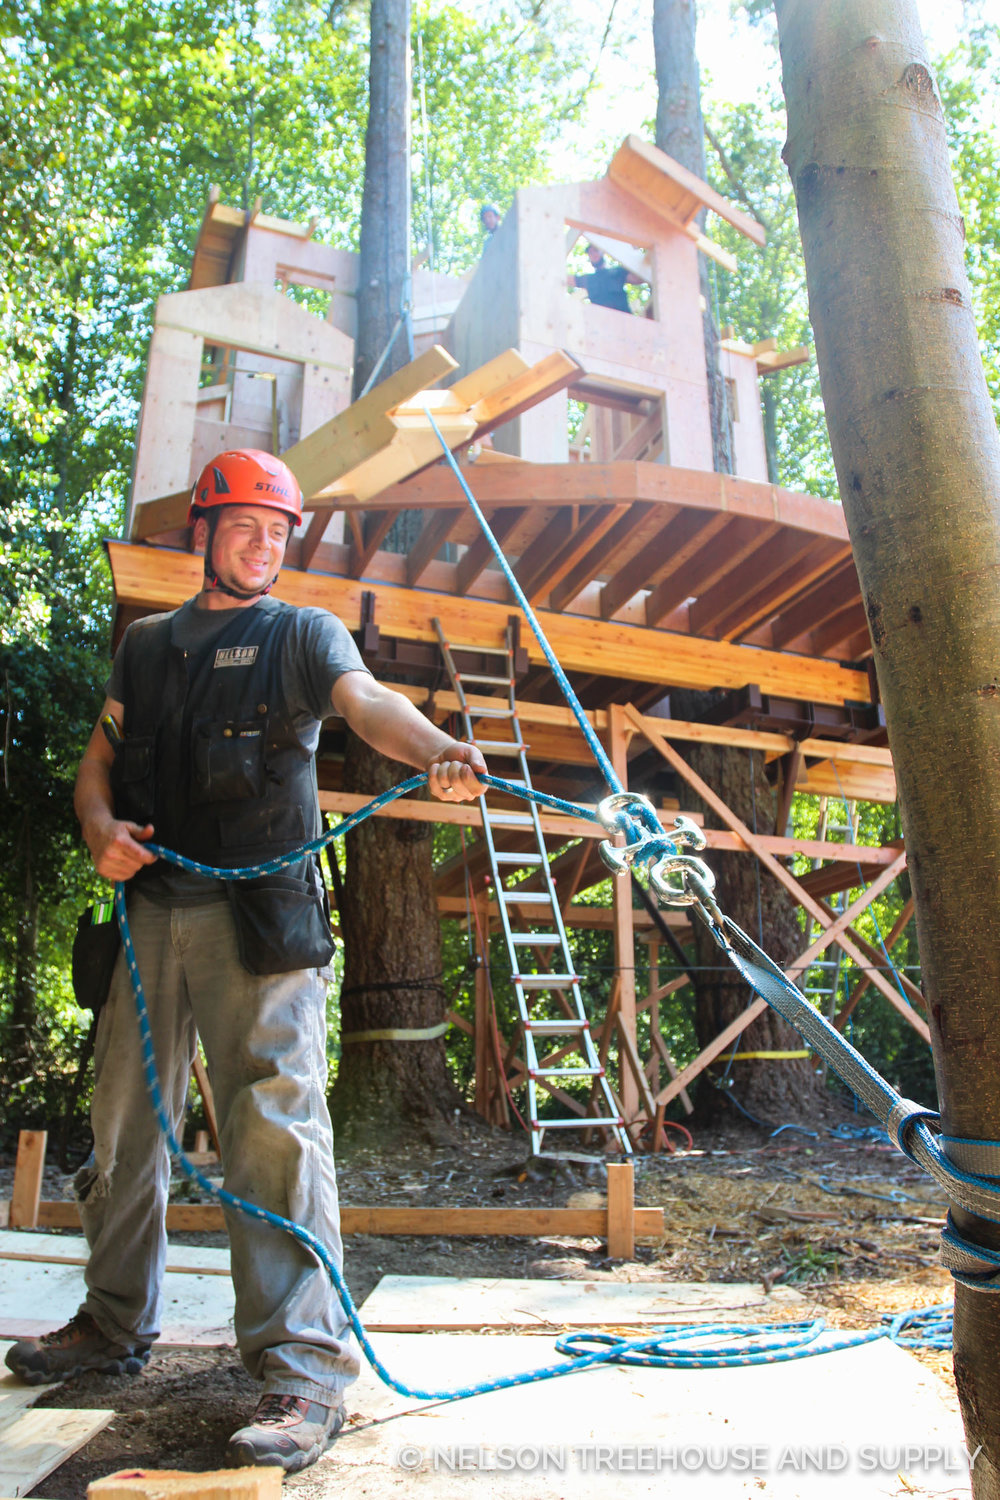 Devin loved building the orcas island treehouse.